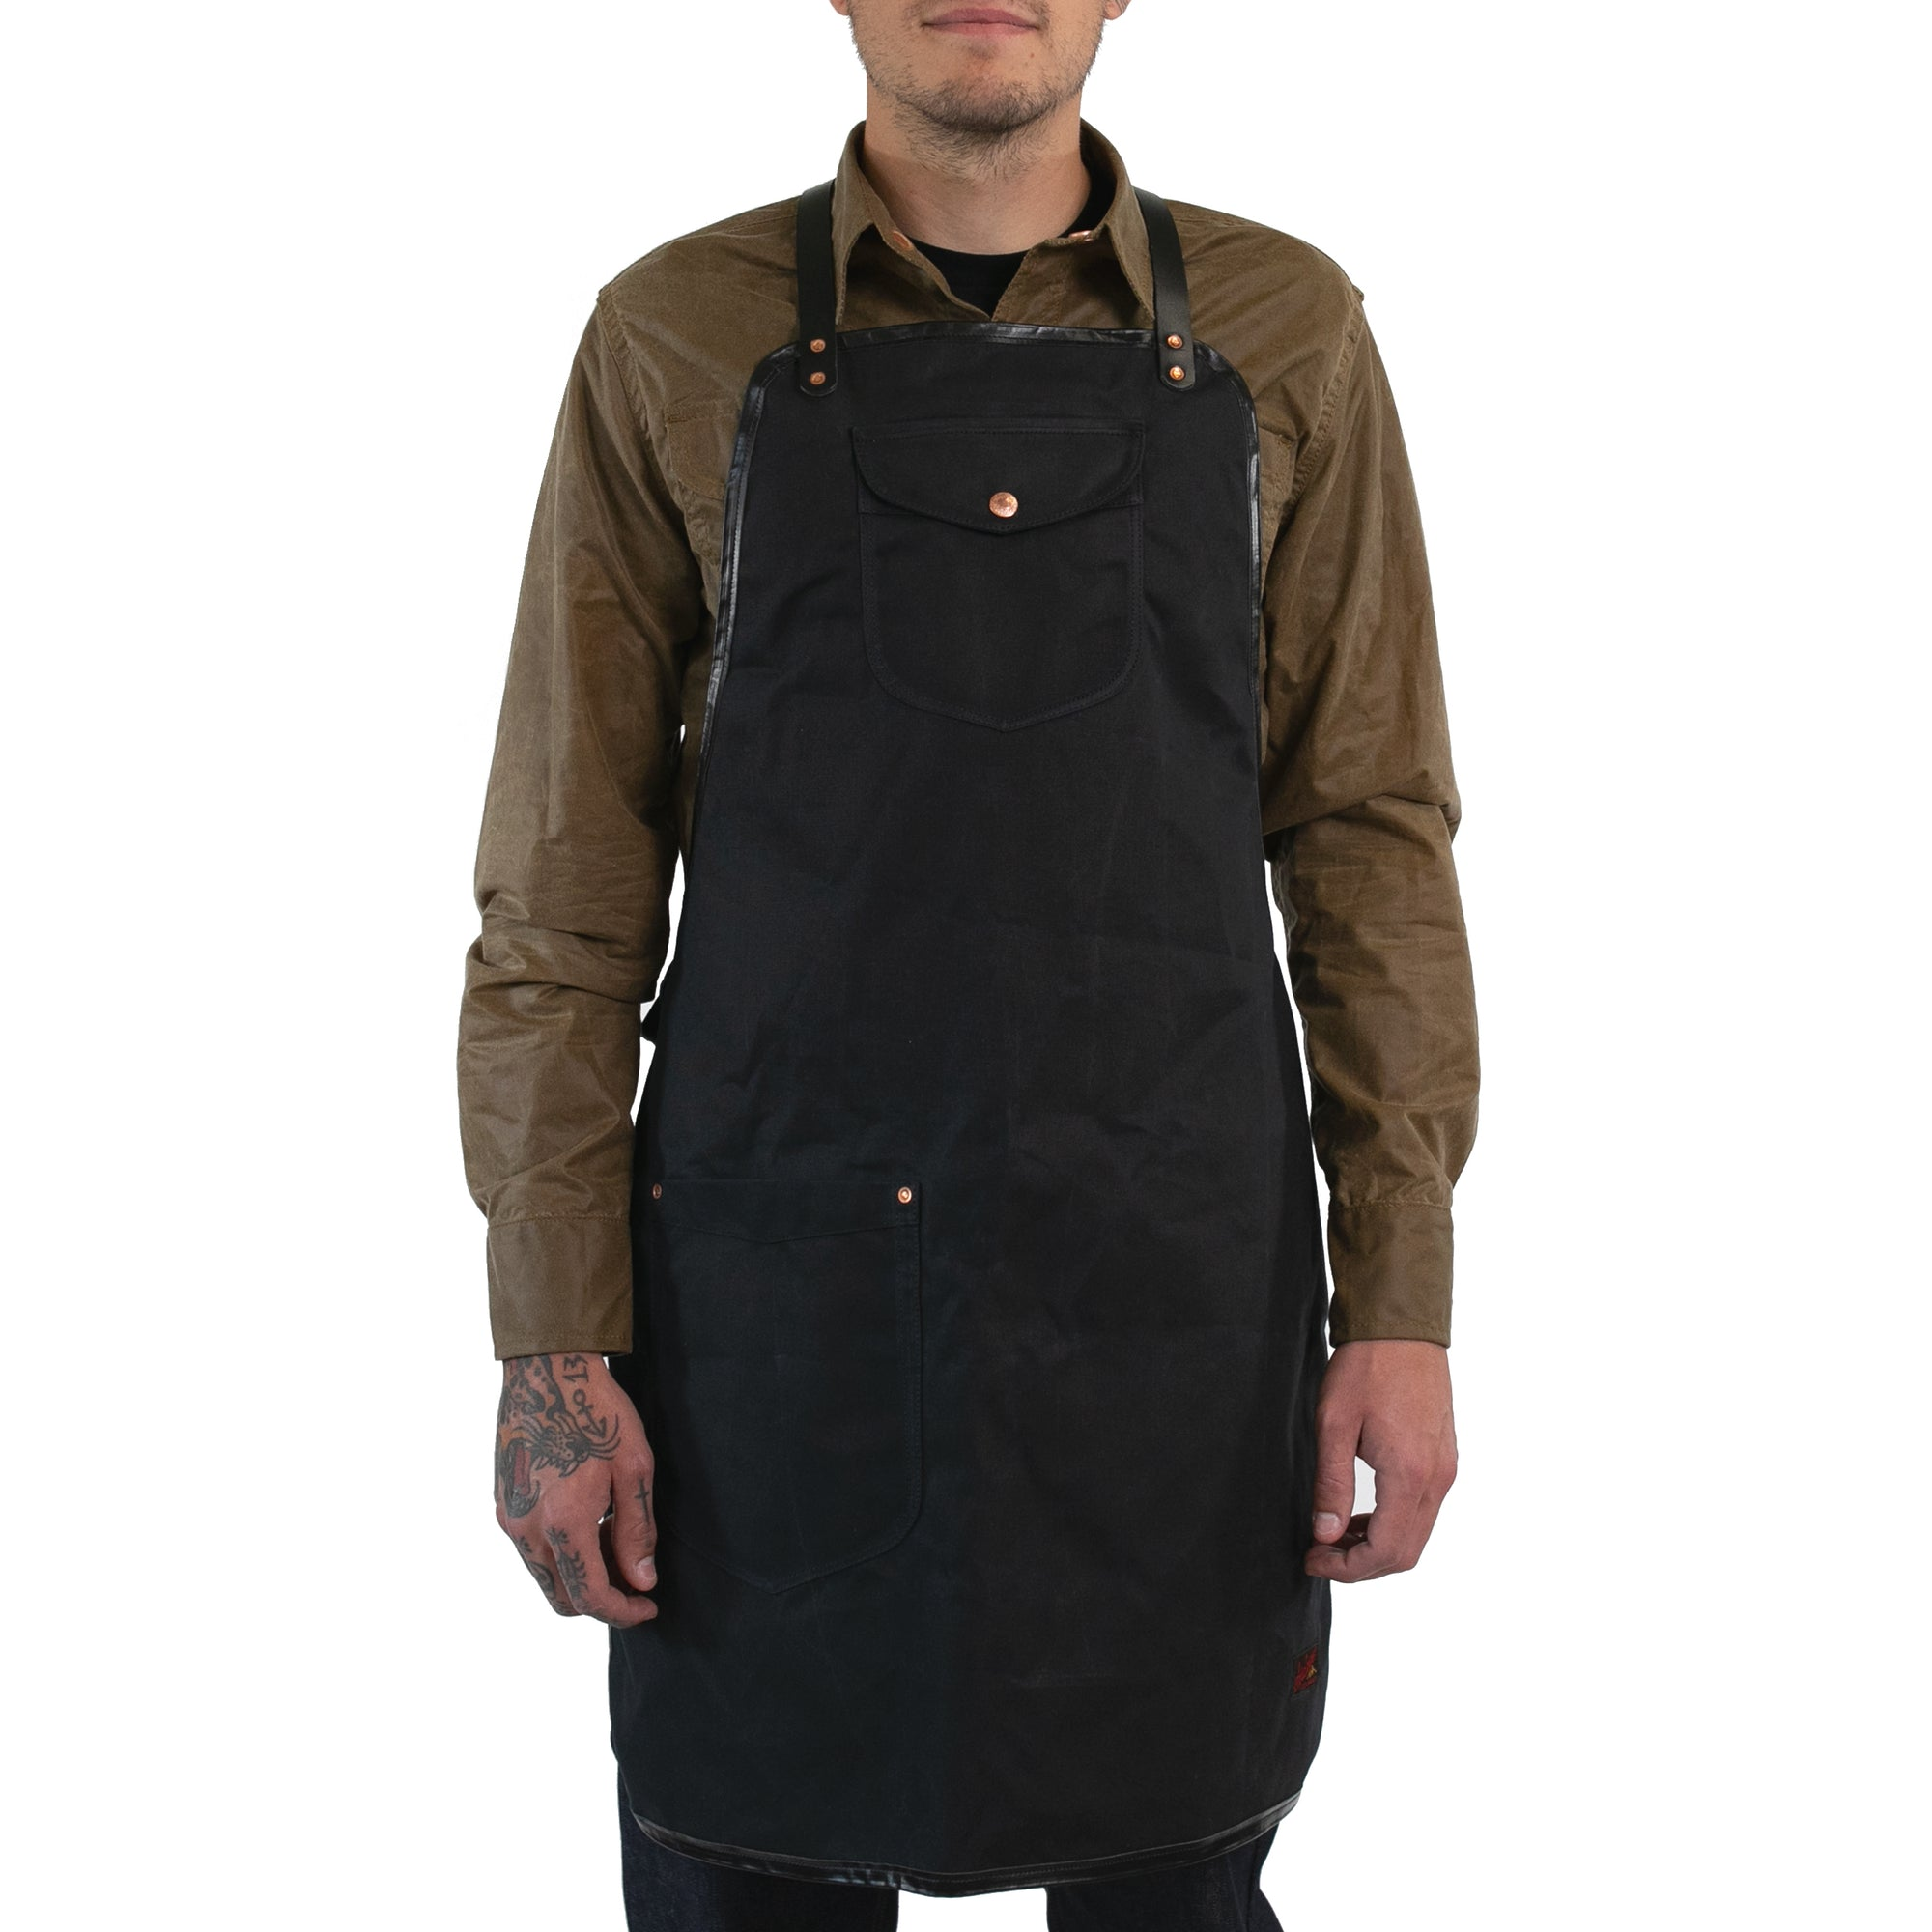 Black Waxed Craftsman's Apron